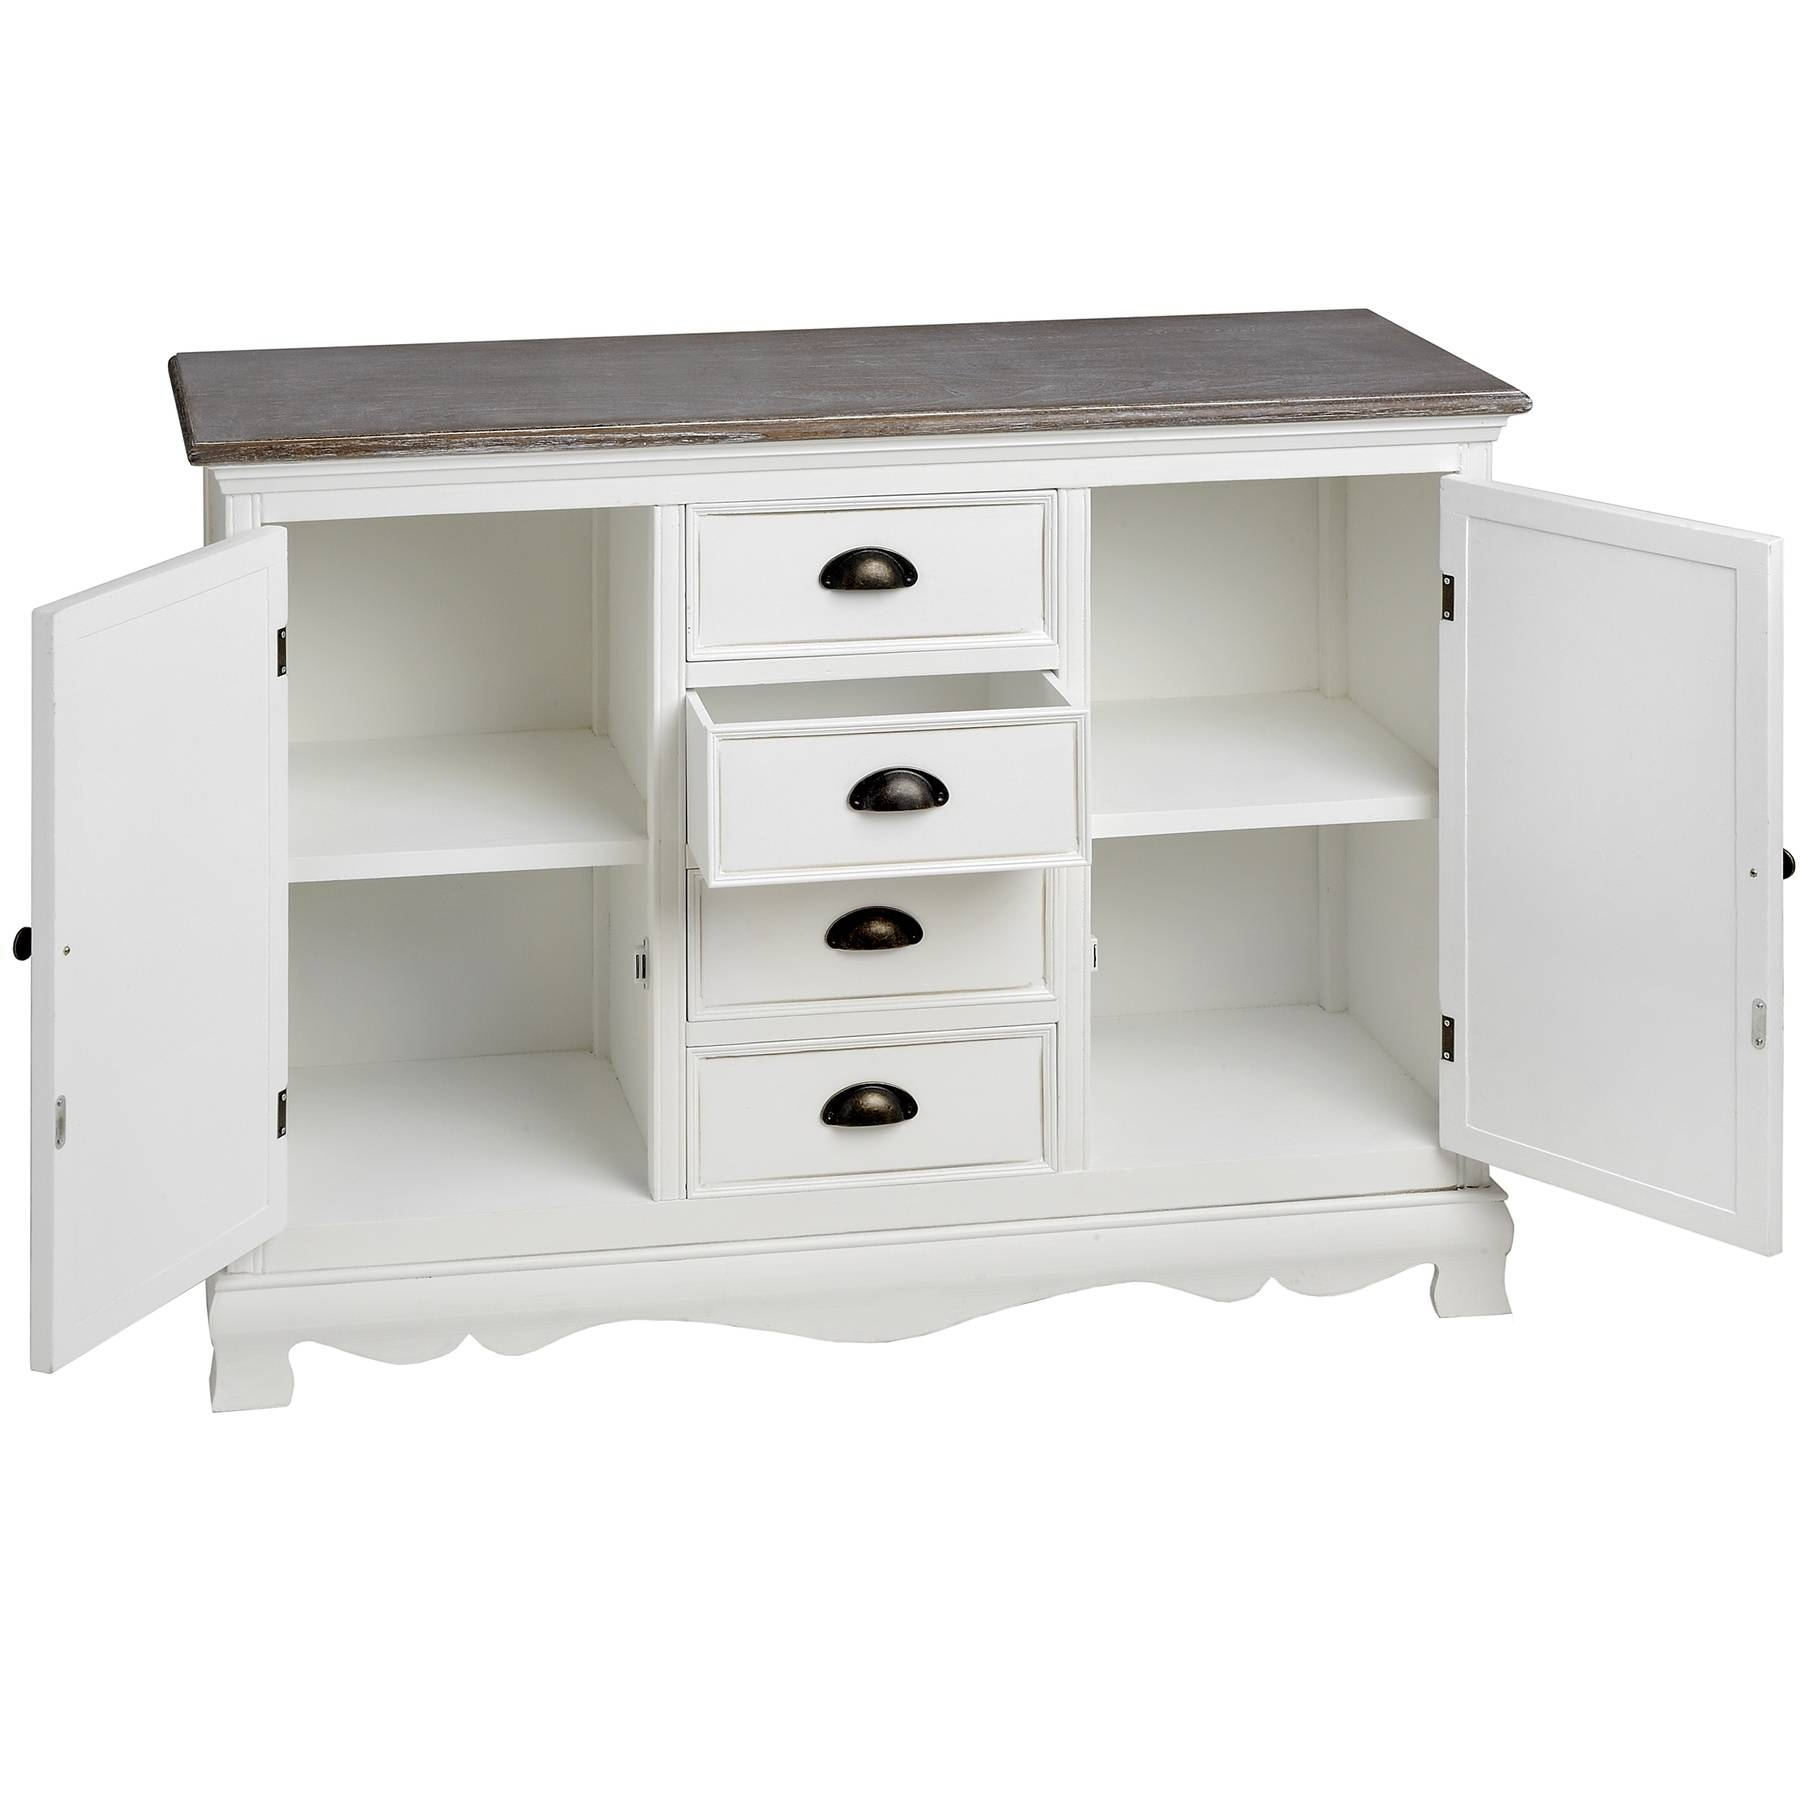 en dresser stain catalog drawer ikea dressers assembled hemnes fully products us white